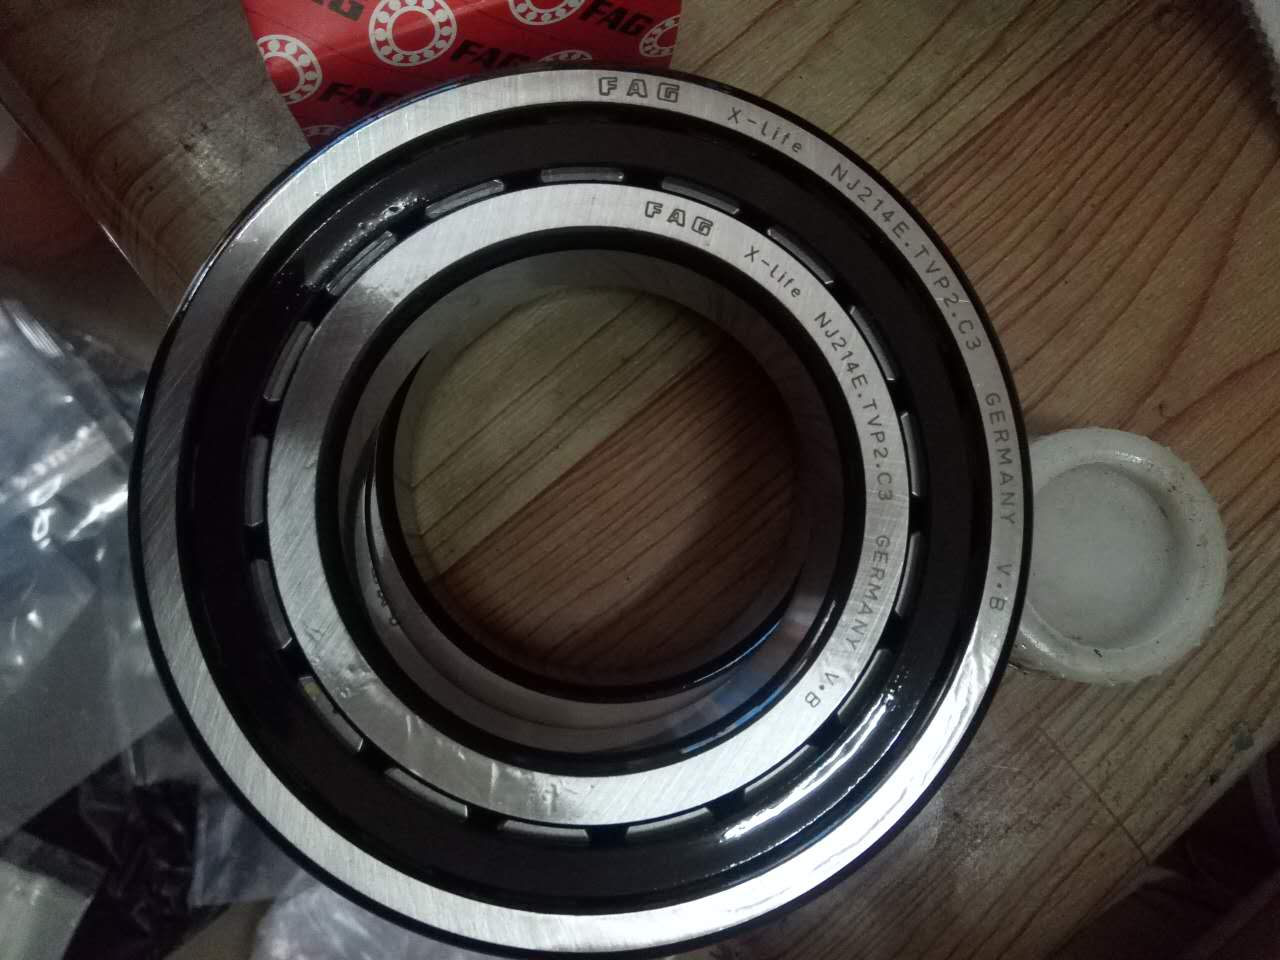 NJ214E M1 C3 German FAG cylindrical roller bearing power plant machinery parts